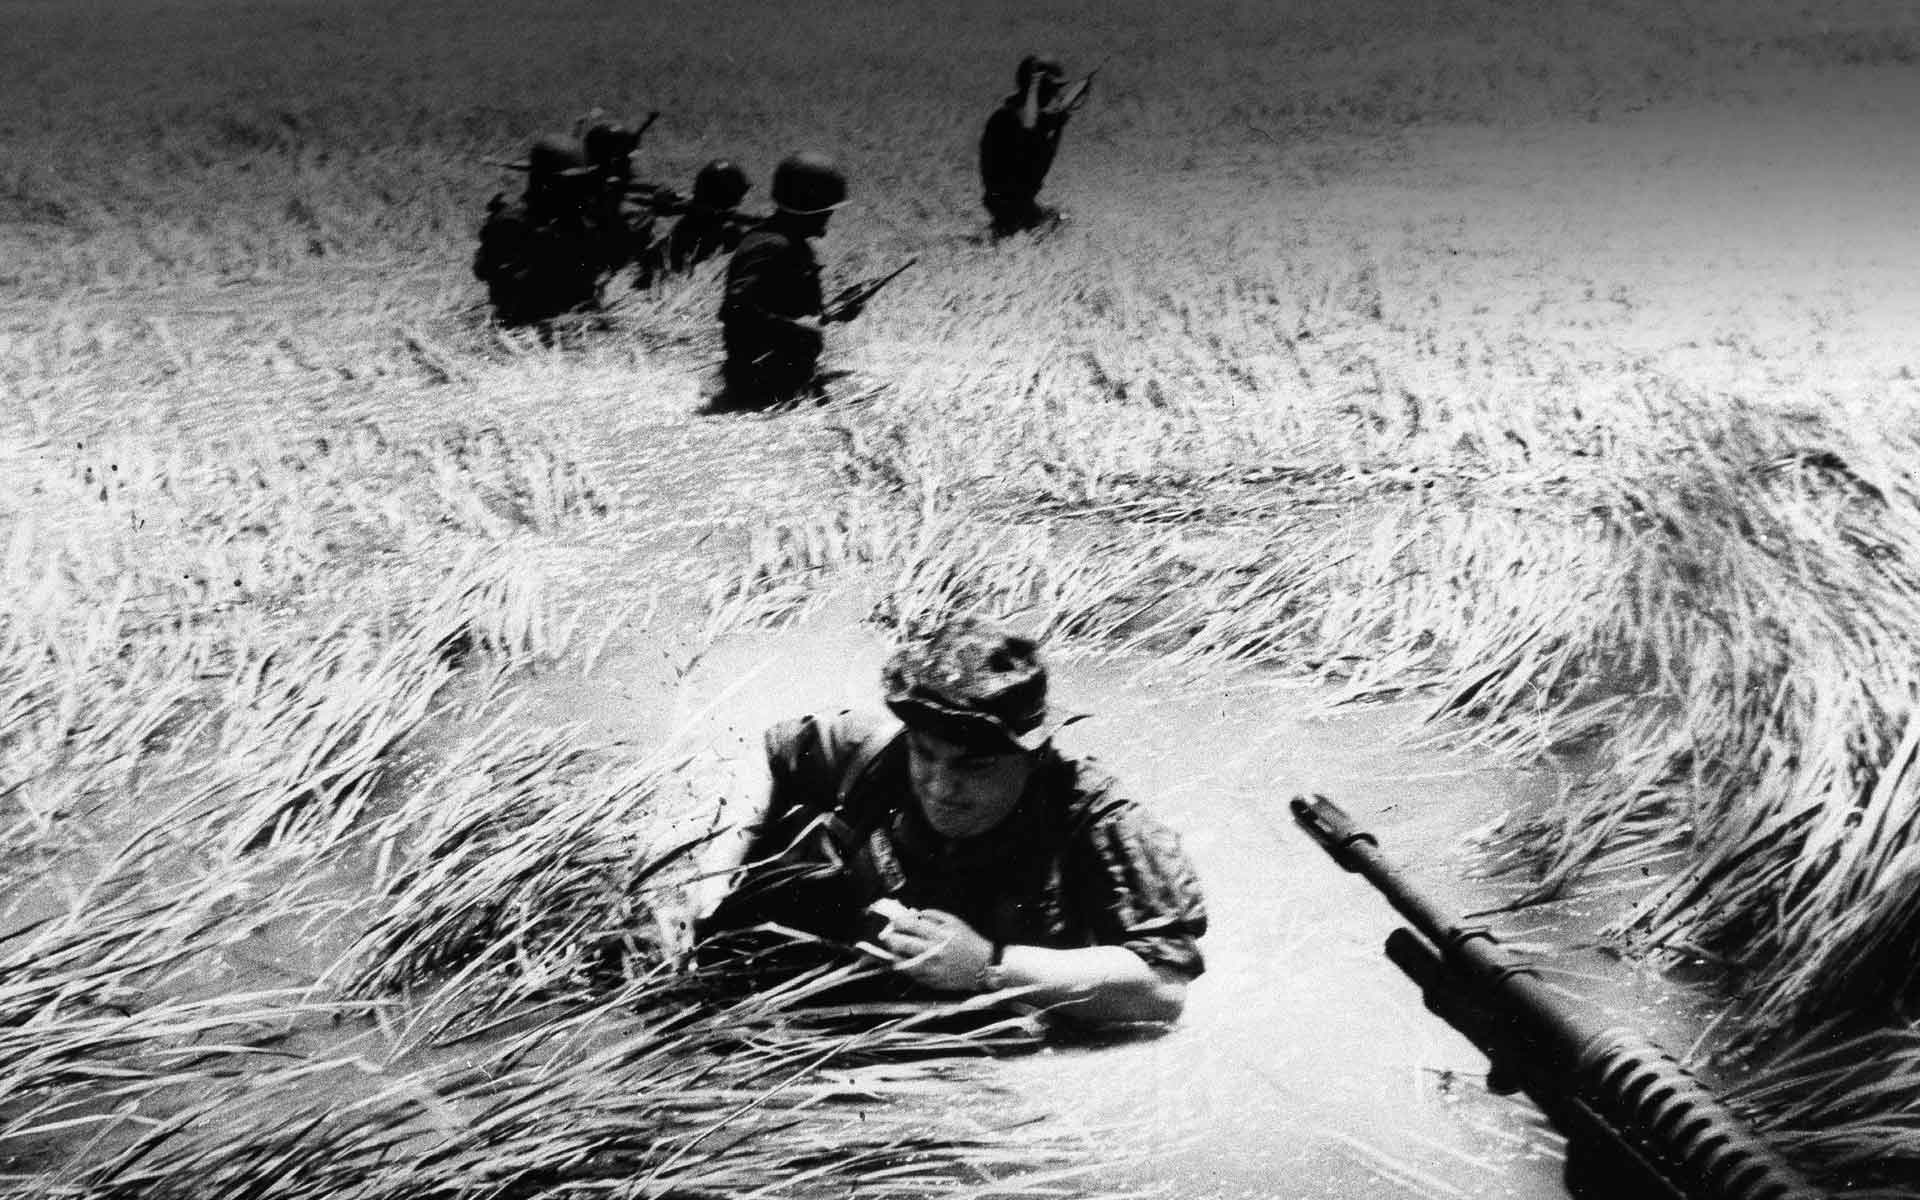 Photojournalist Horst Faas, who took this picture of the Vietnam War, is among five journalists whose efforts at holding the U.S. government accountable is featured in the documentary, DATELINE—SAIGON. (Horst Faas via Dateline-Saigon)